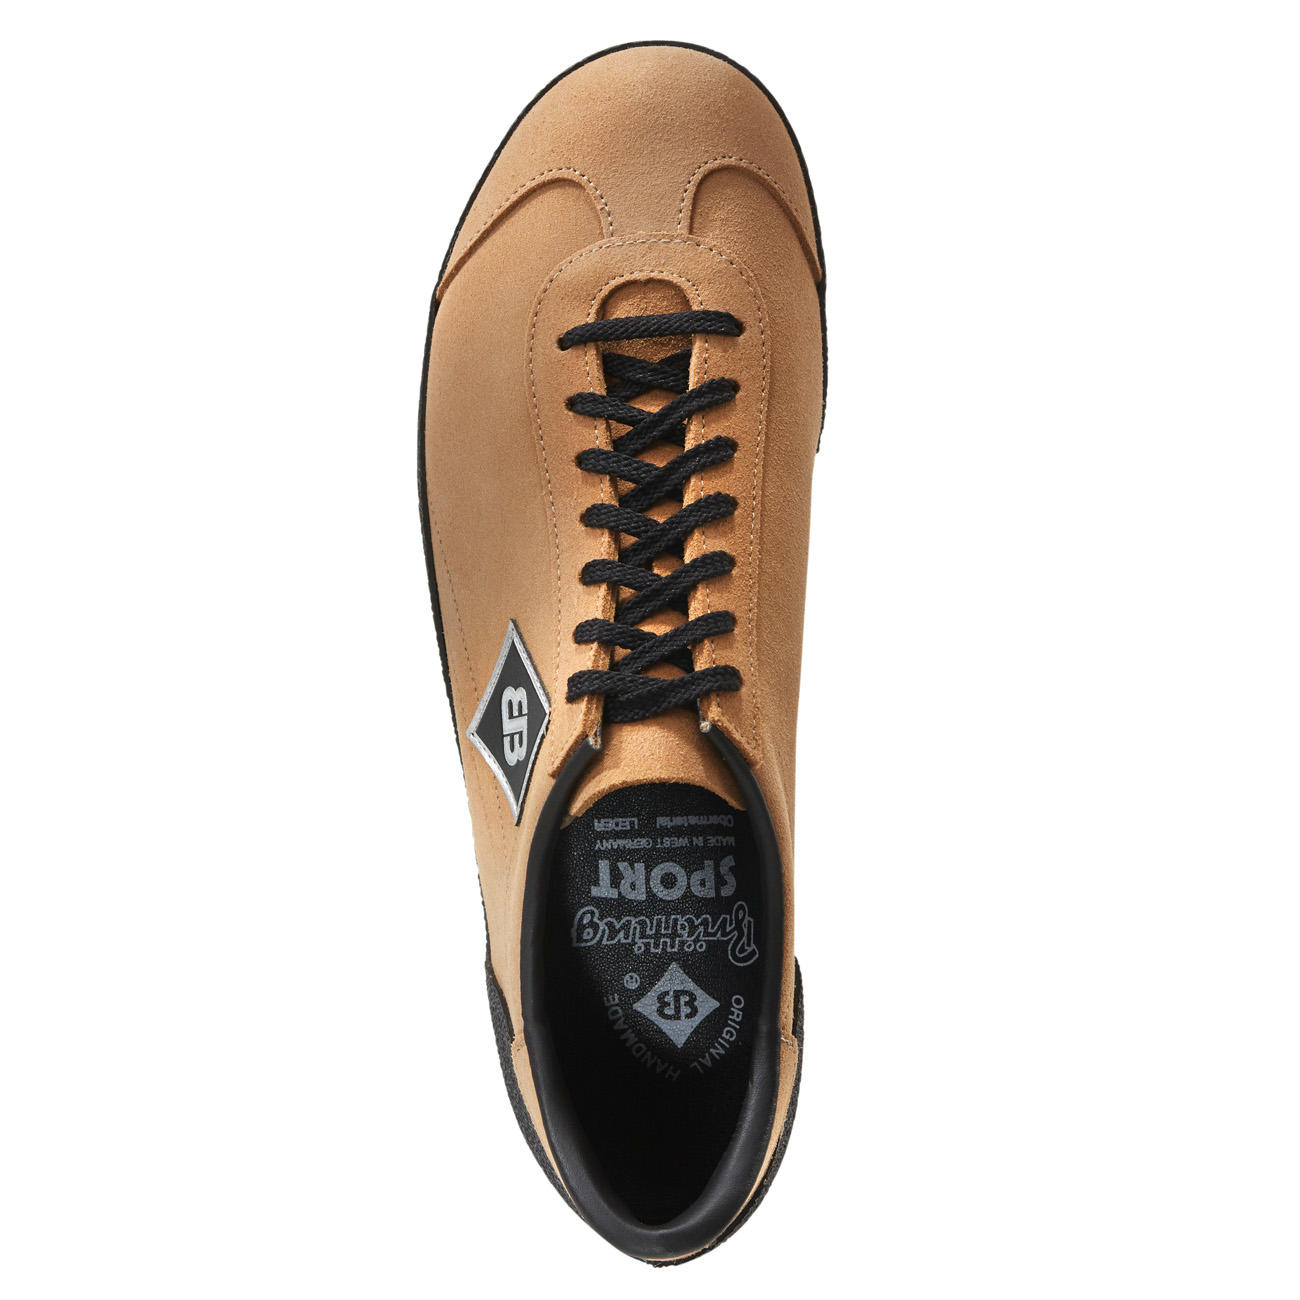 """new style 51f7d 6a37f Brütting Sneakers """"Astroturfer"""" 